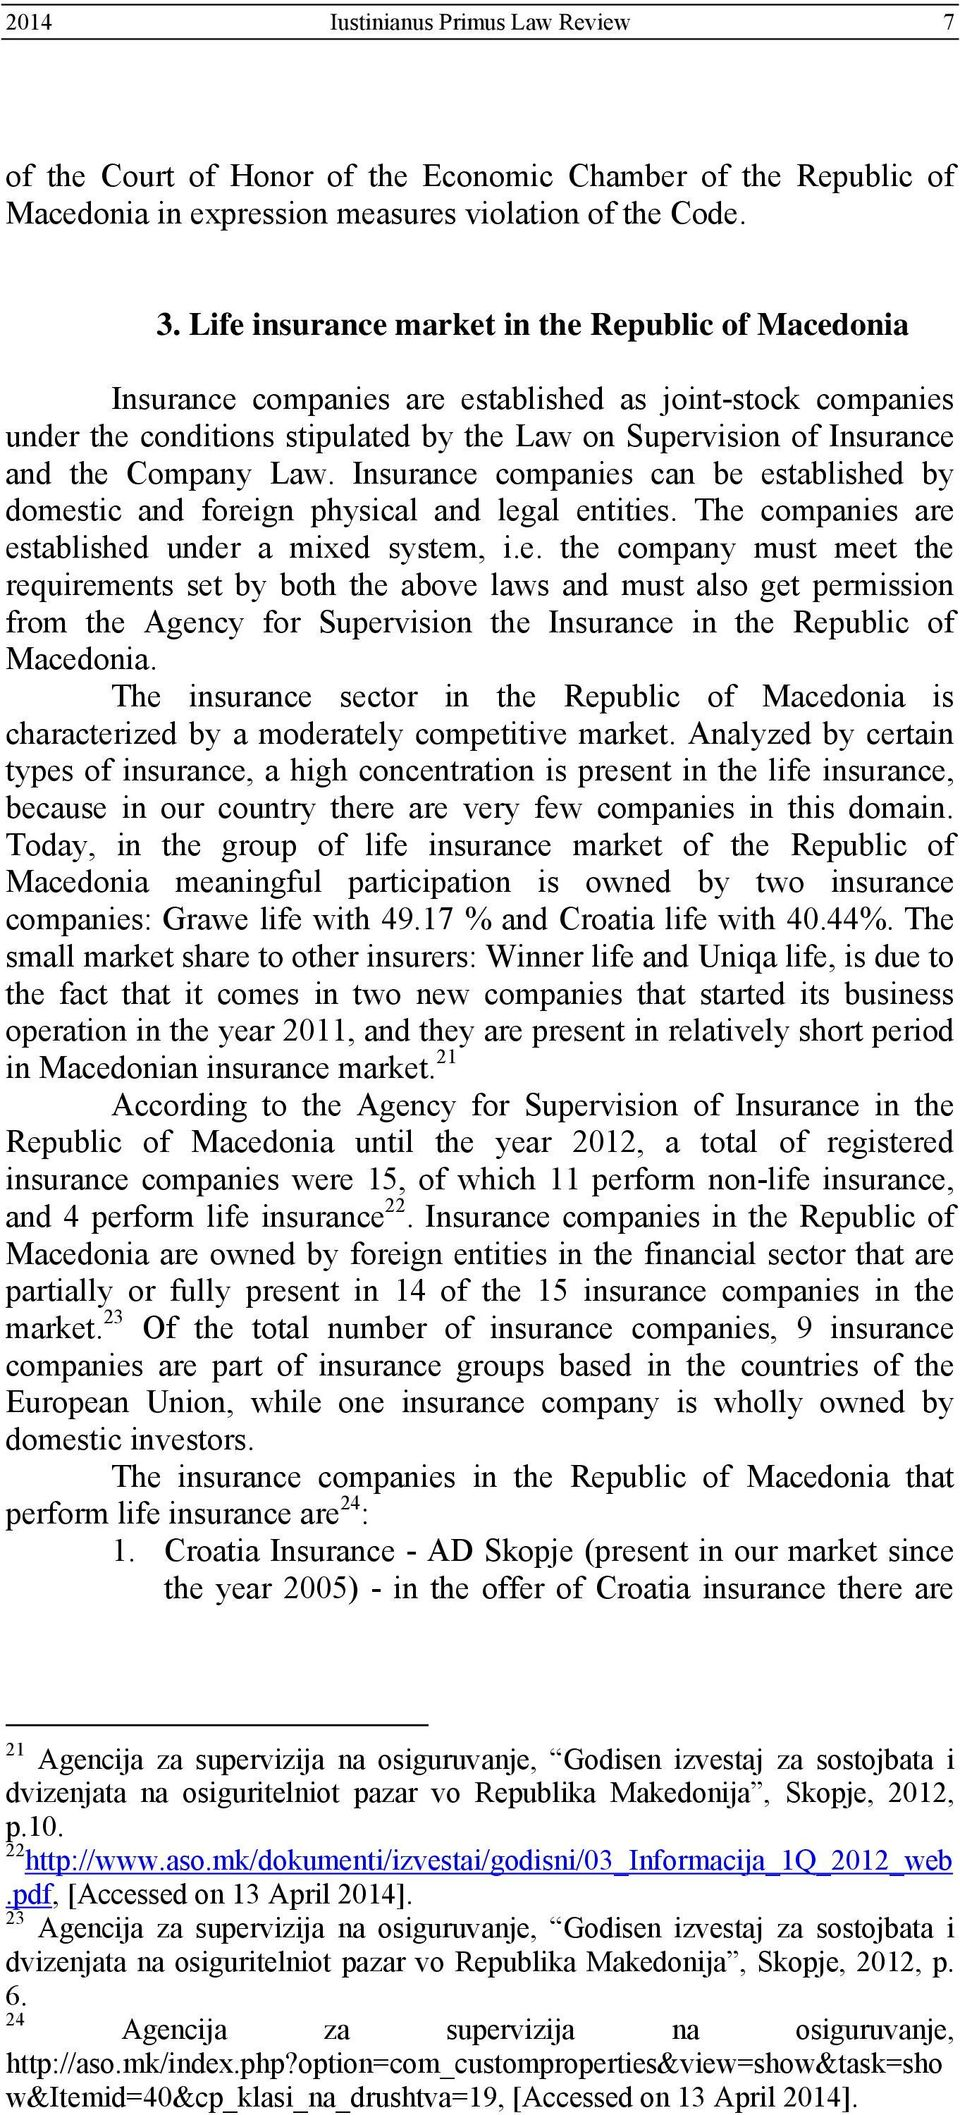 Law. Insurance companies can be established by domestic and foreign physical and legal entities. The companies are established under a mixed system, i.e. the company must meet the requirements set by both the above laws and must also get permission from the Agency for Supervision the Insurance in the Republic of Macedonia.